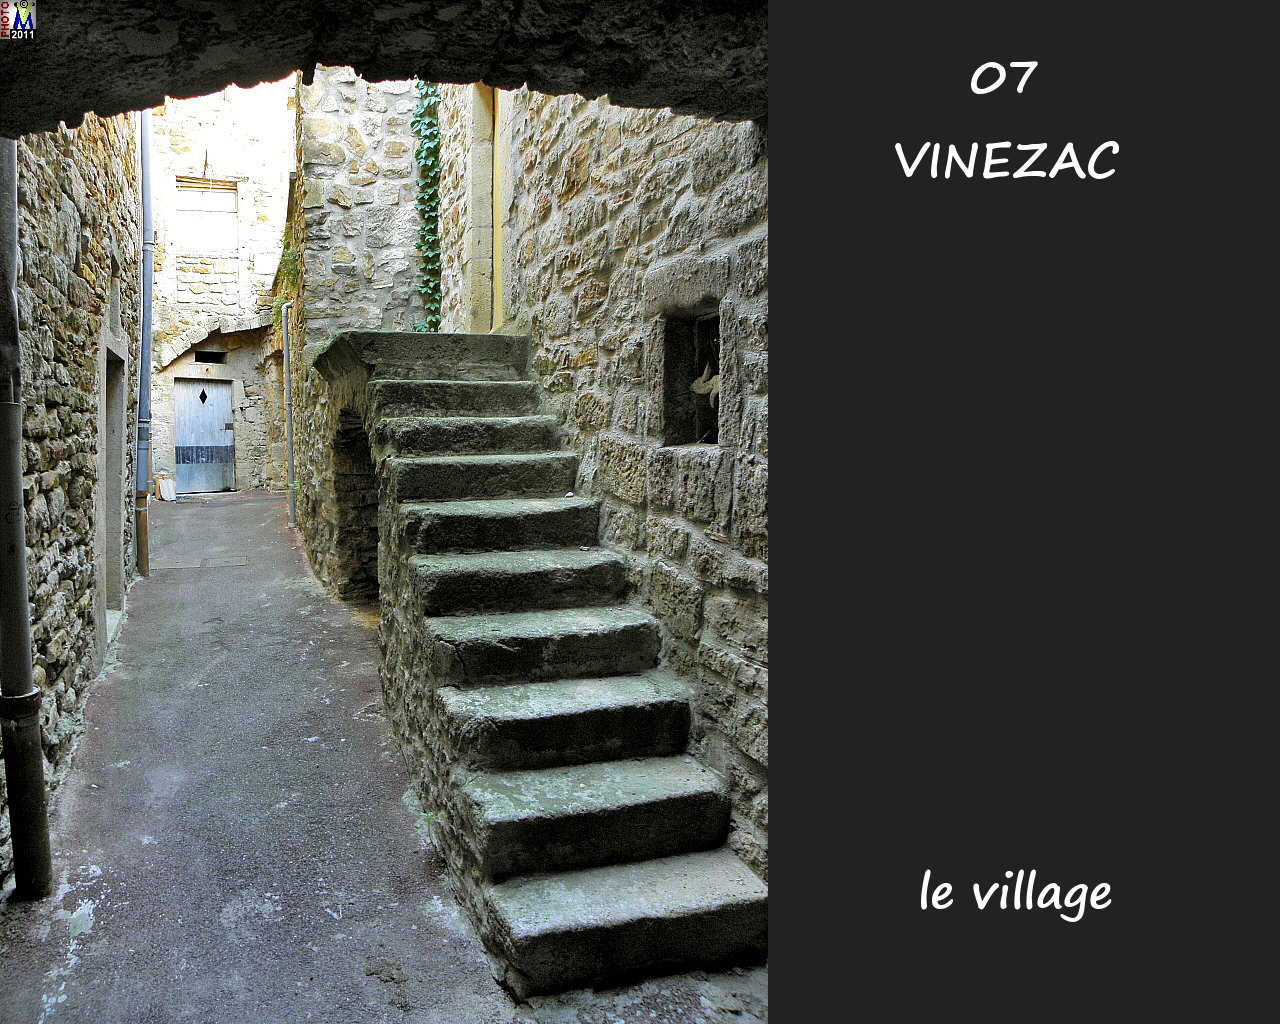 07VINEZAC_village_130.jpg